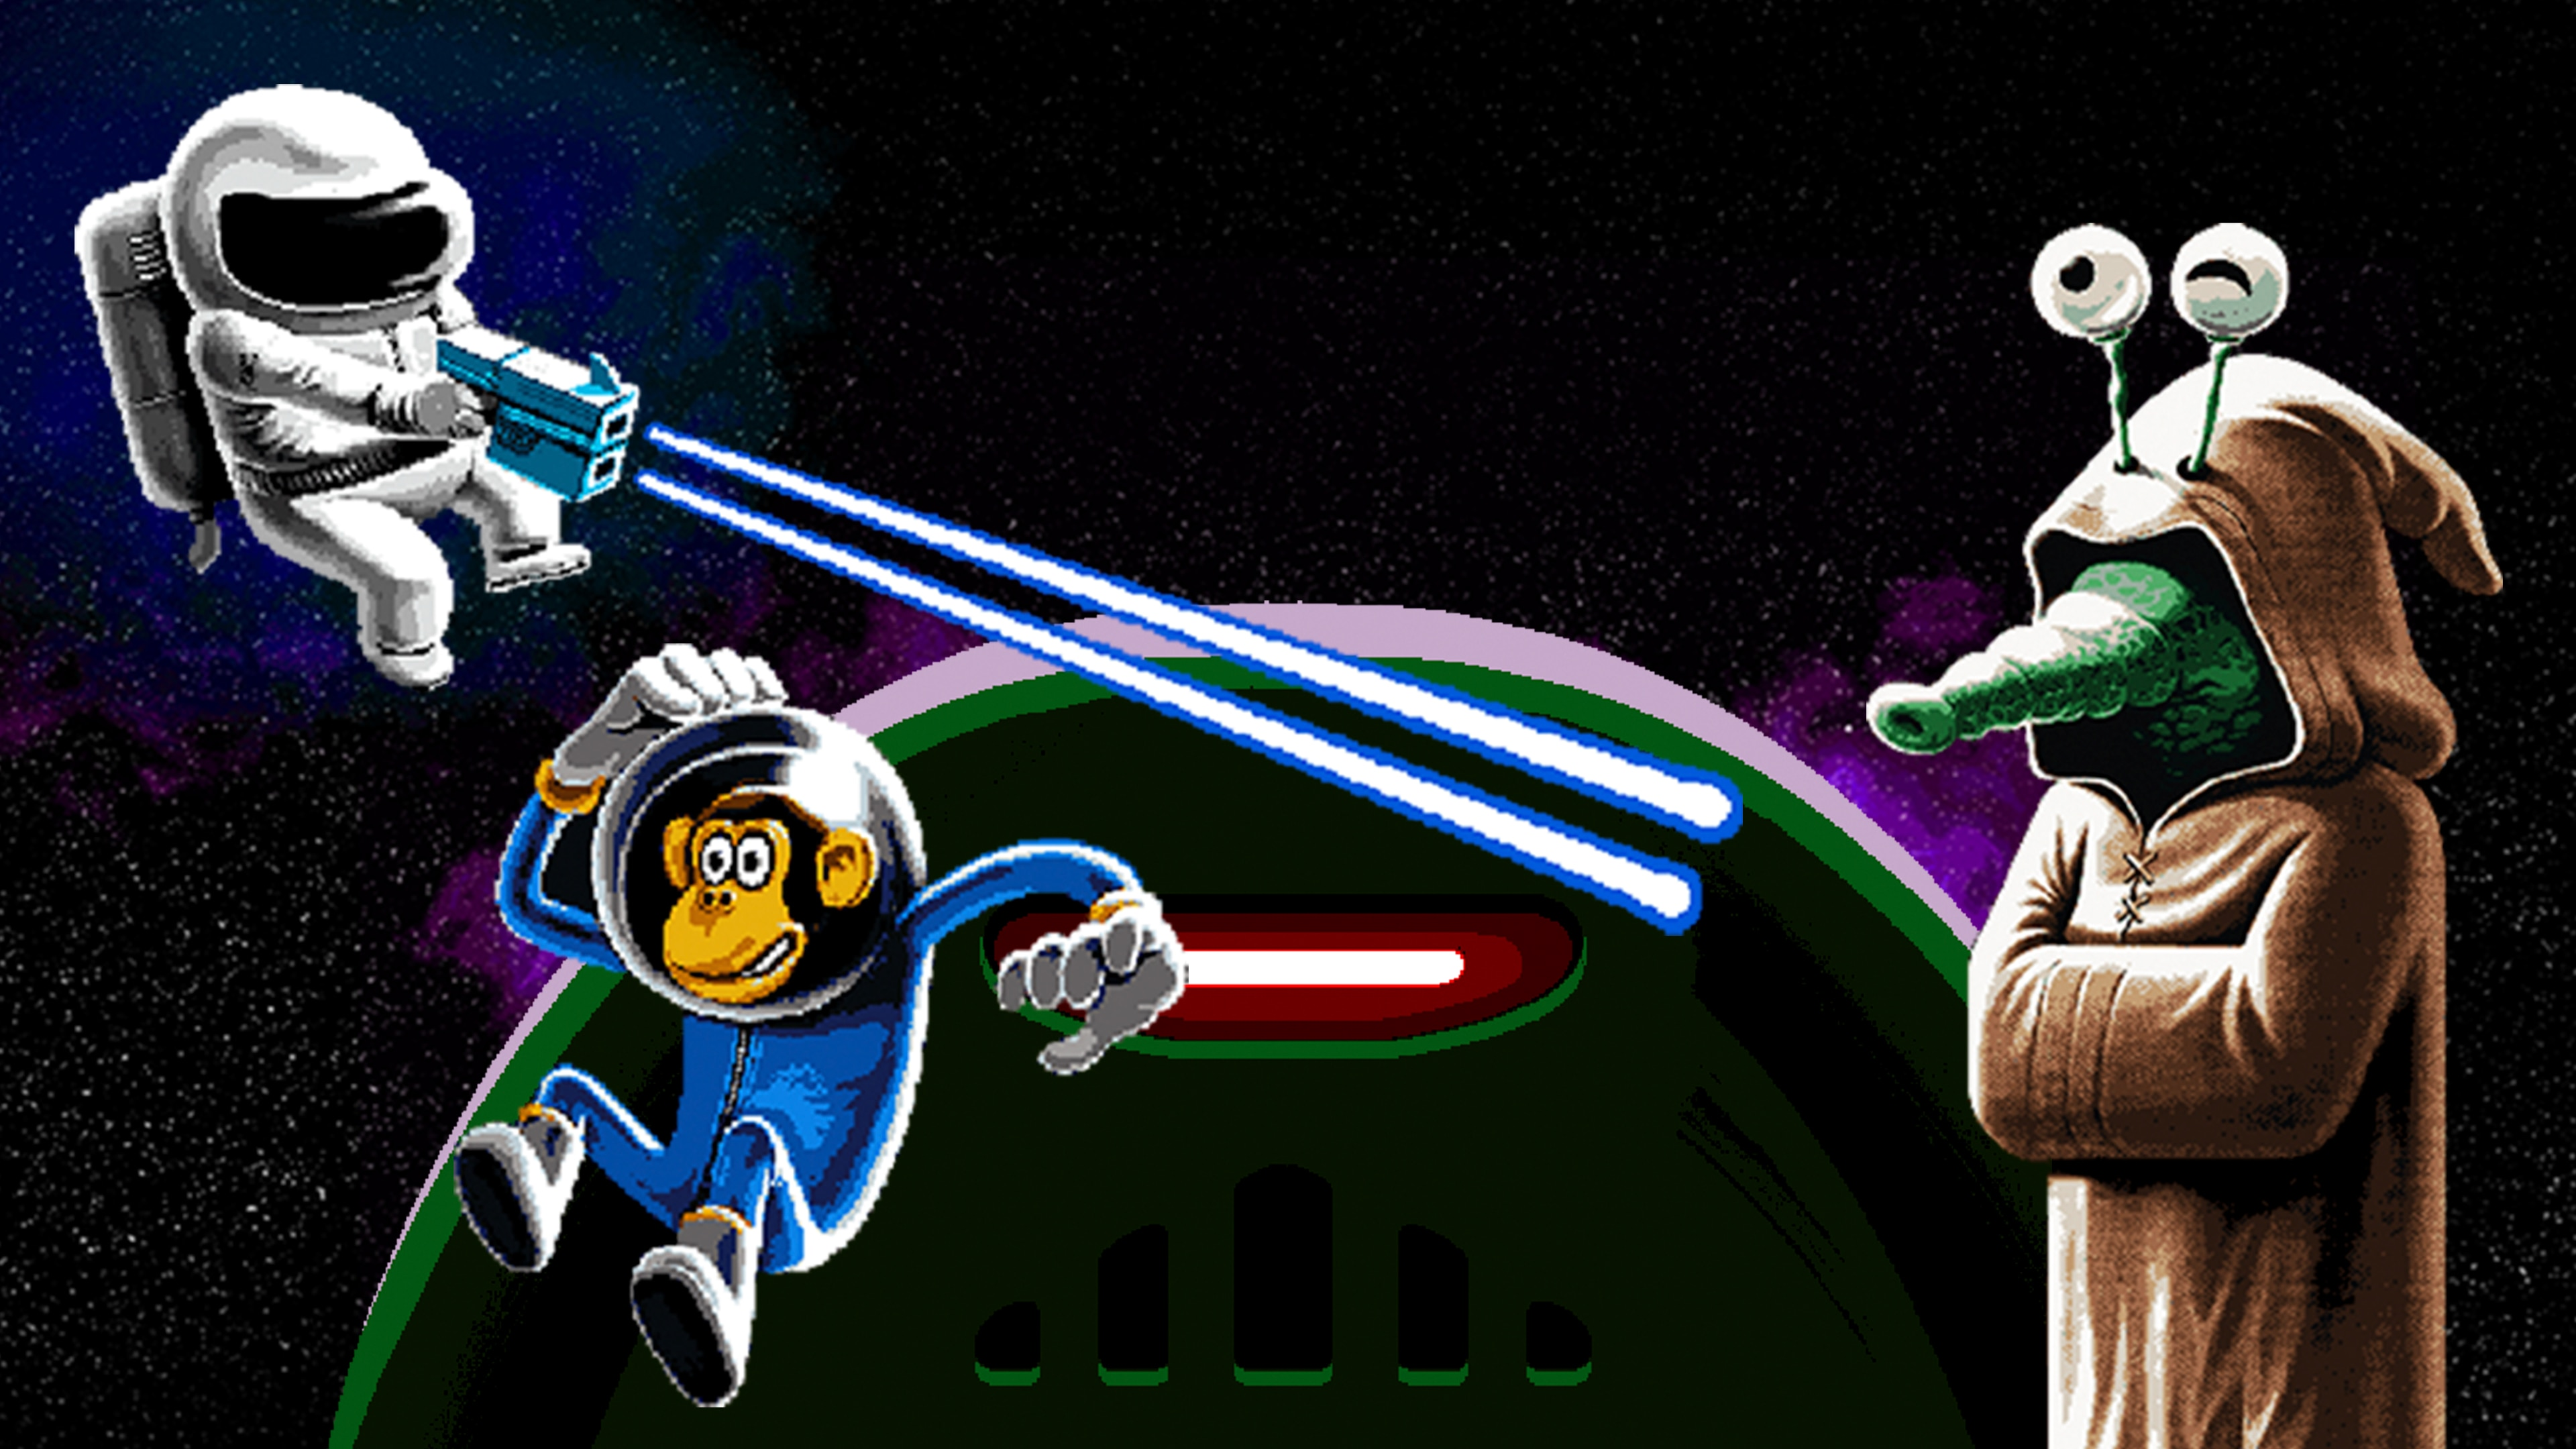 Willy Jetman: Astromonkey´s Revenge